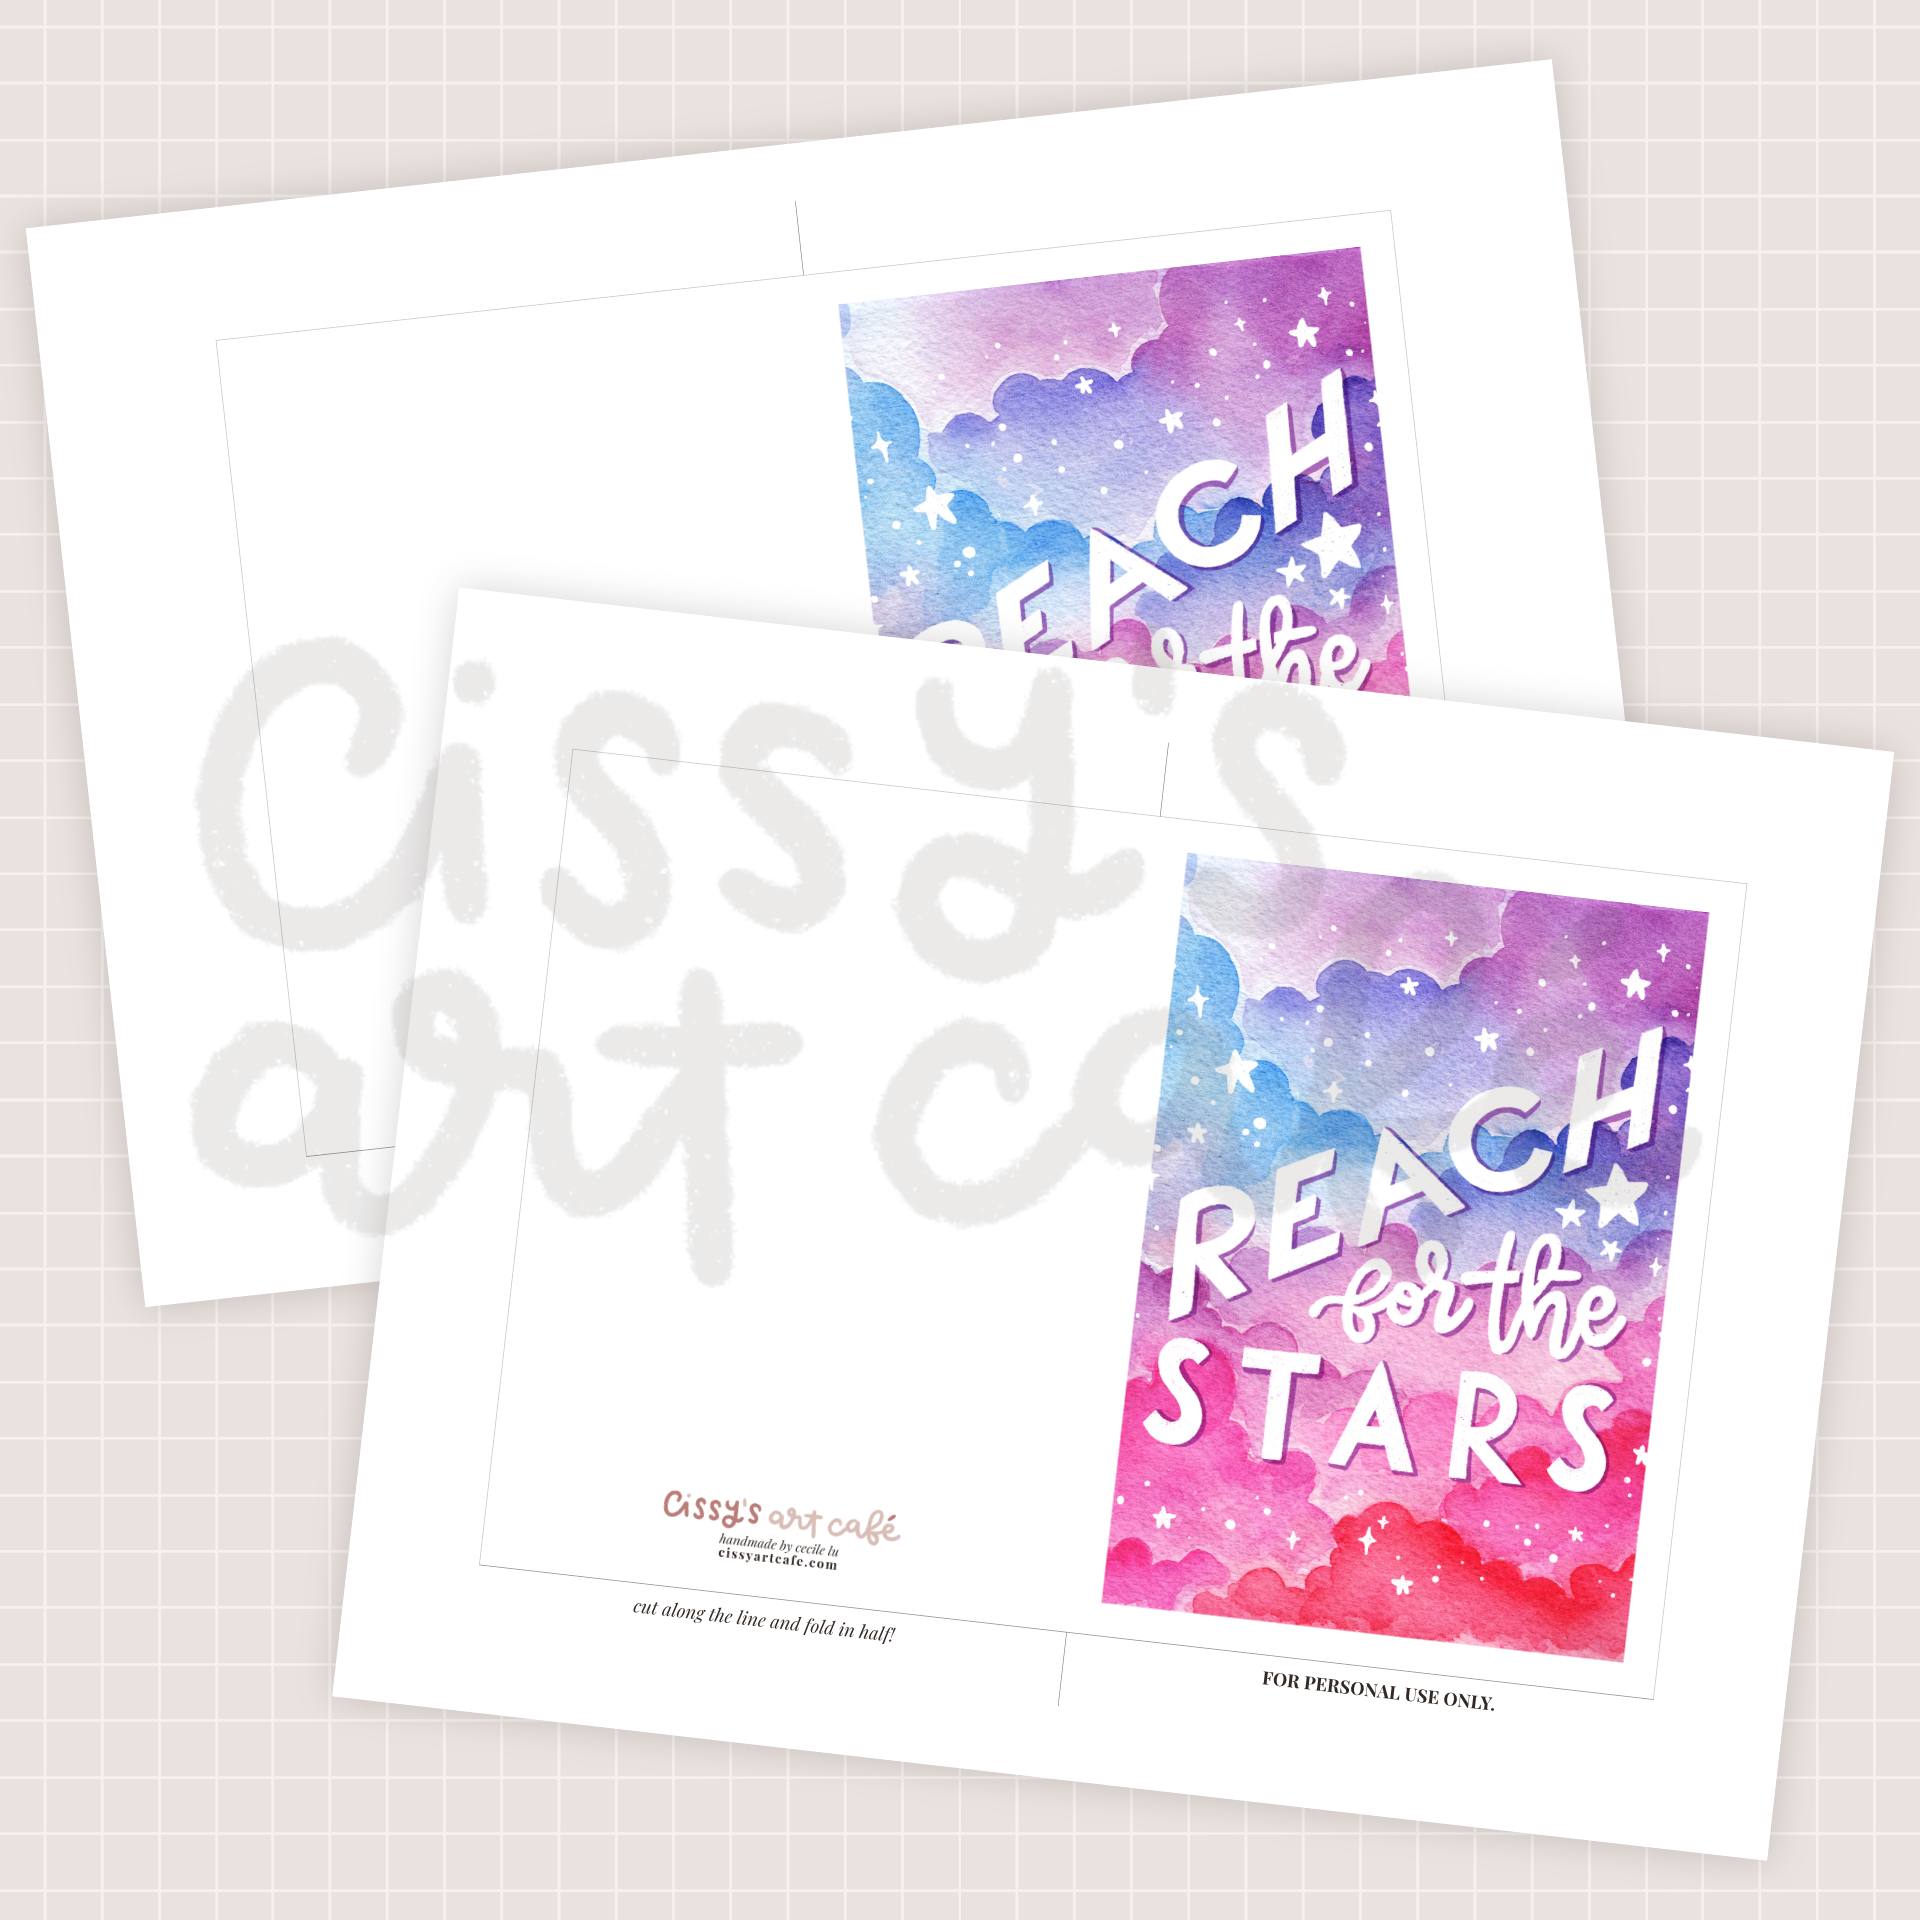 reach for the stars greeting card @ cissy's art café